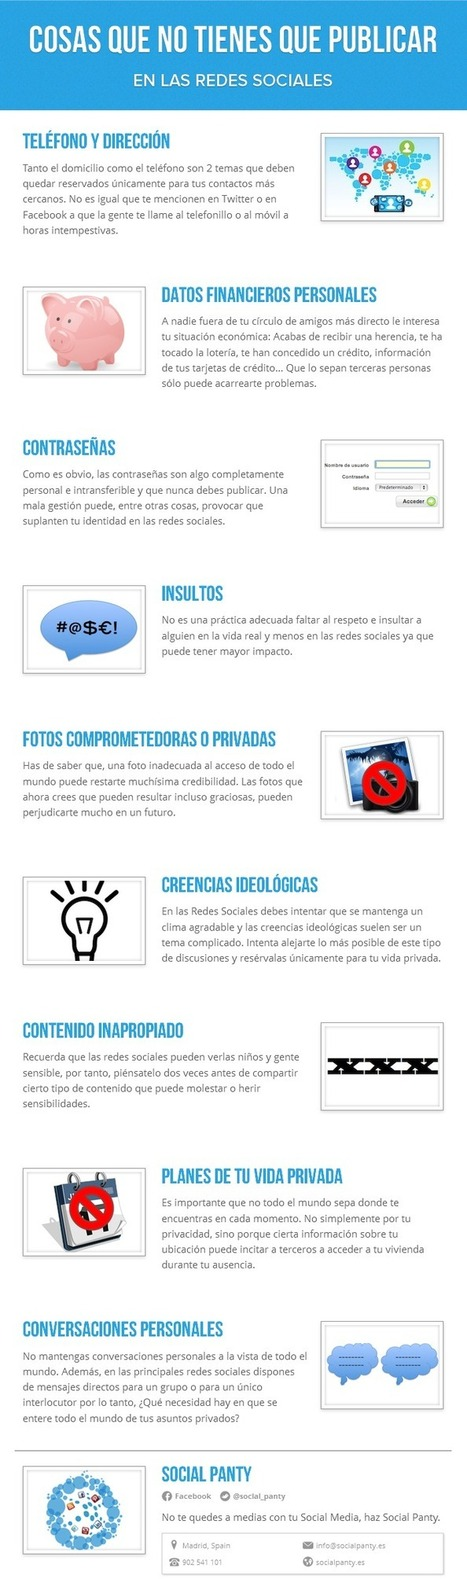 Cosas que no debes publicar en Redes Sociales | E-learning del futuro | Scoop.it